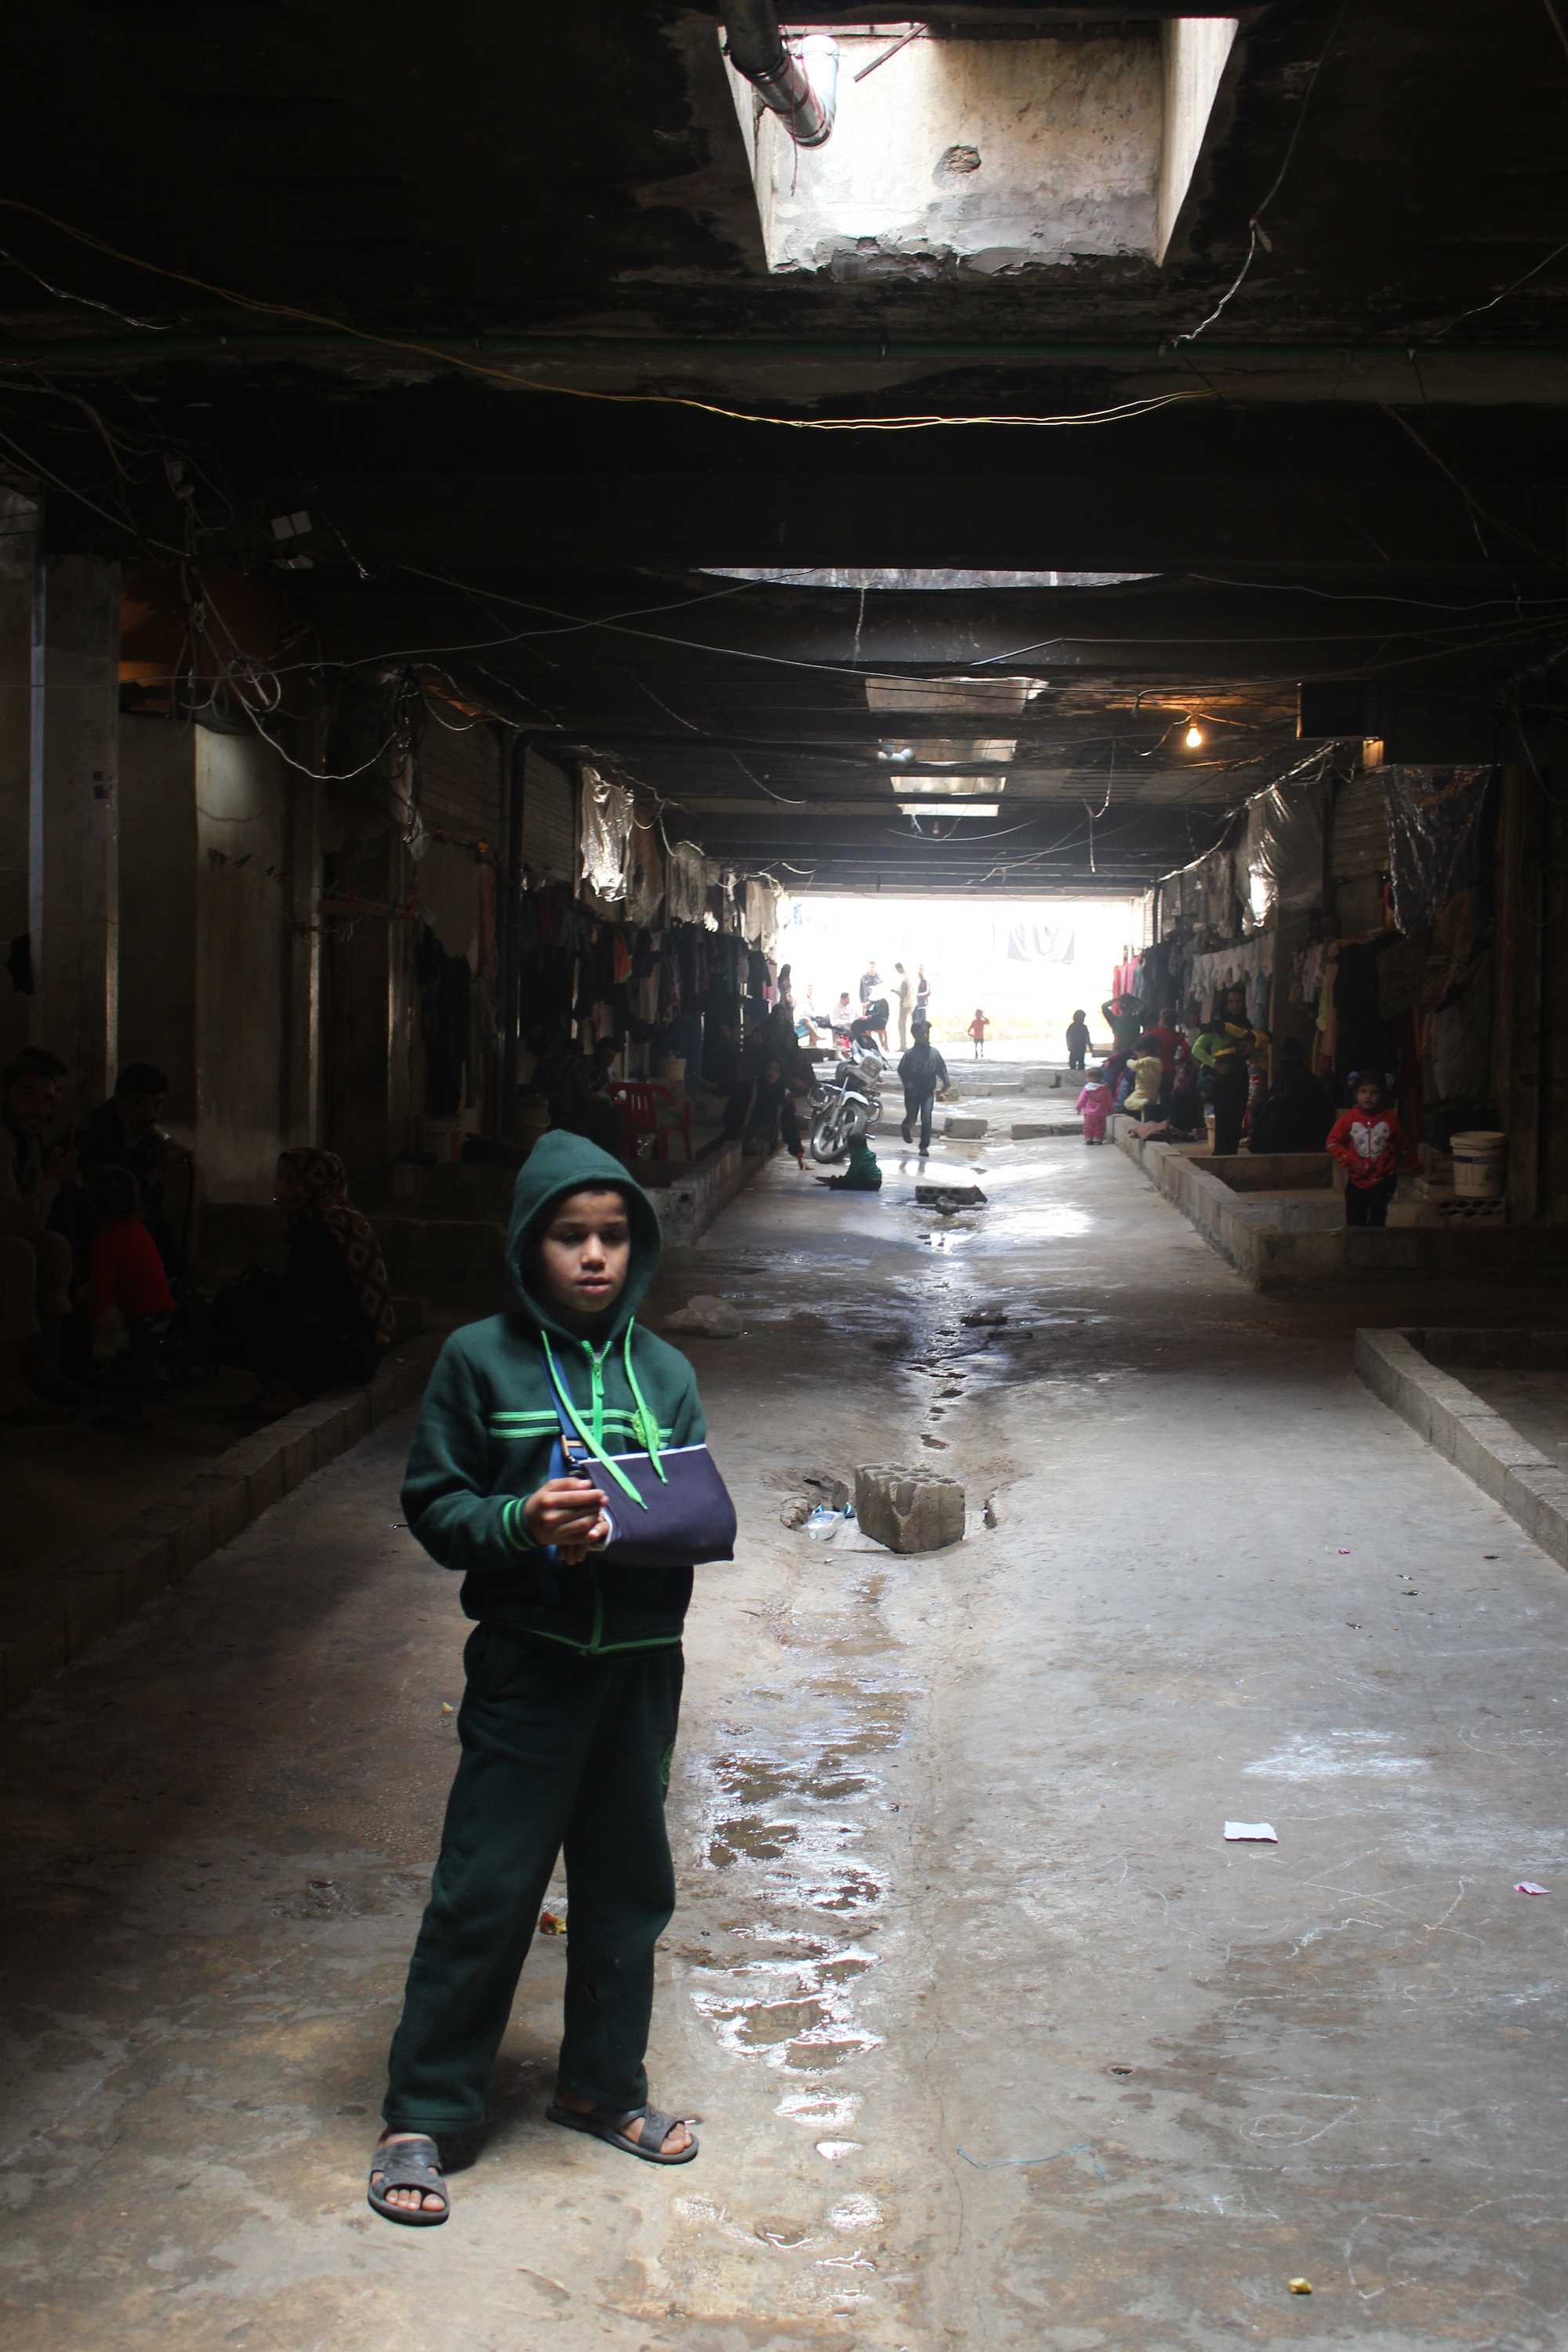 Around 850 Syrian refugees are living in an abandoned car park near the southern Lebanese city of Saida